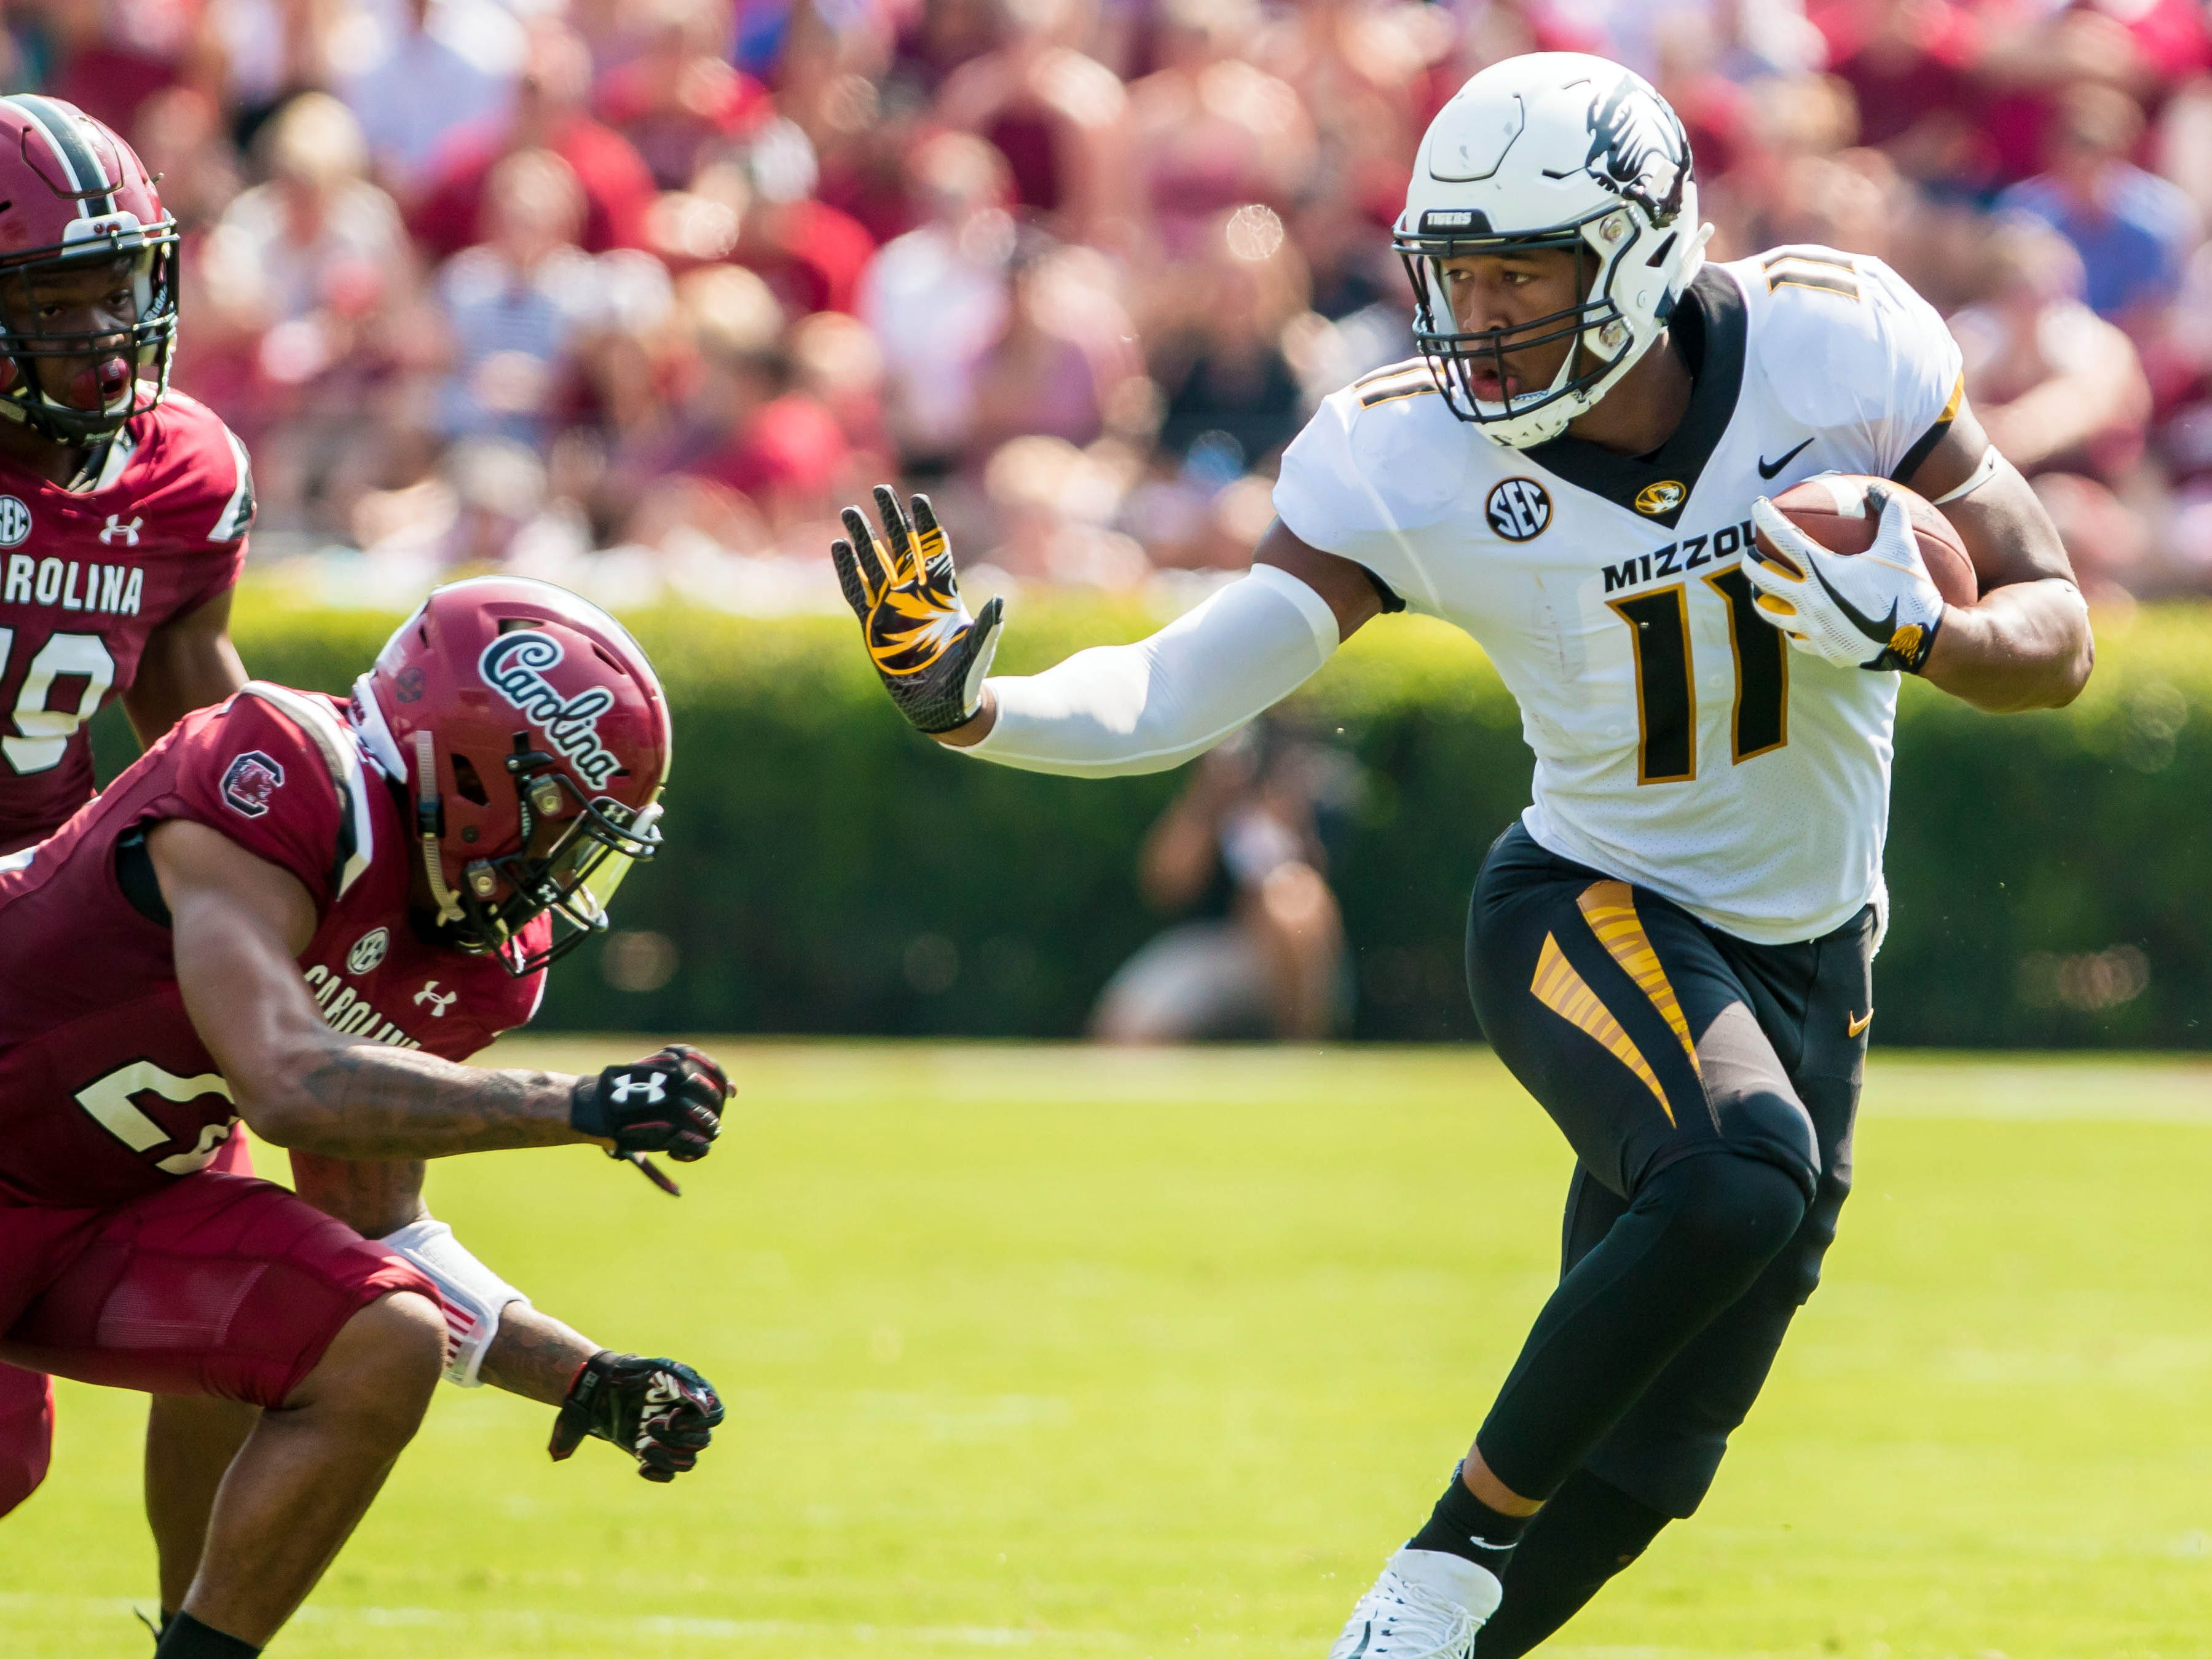 Missouri Tigers tight end Kendall Blanton attempts to get around South Carolina Gamecocks defensive back Steven Montac in the first half at Williams-Brice Stadium.